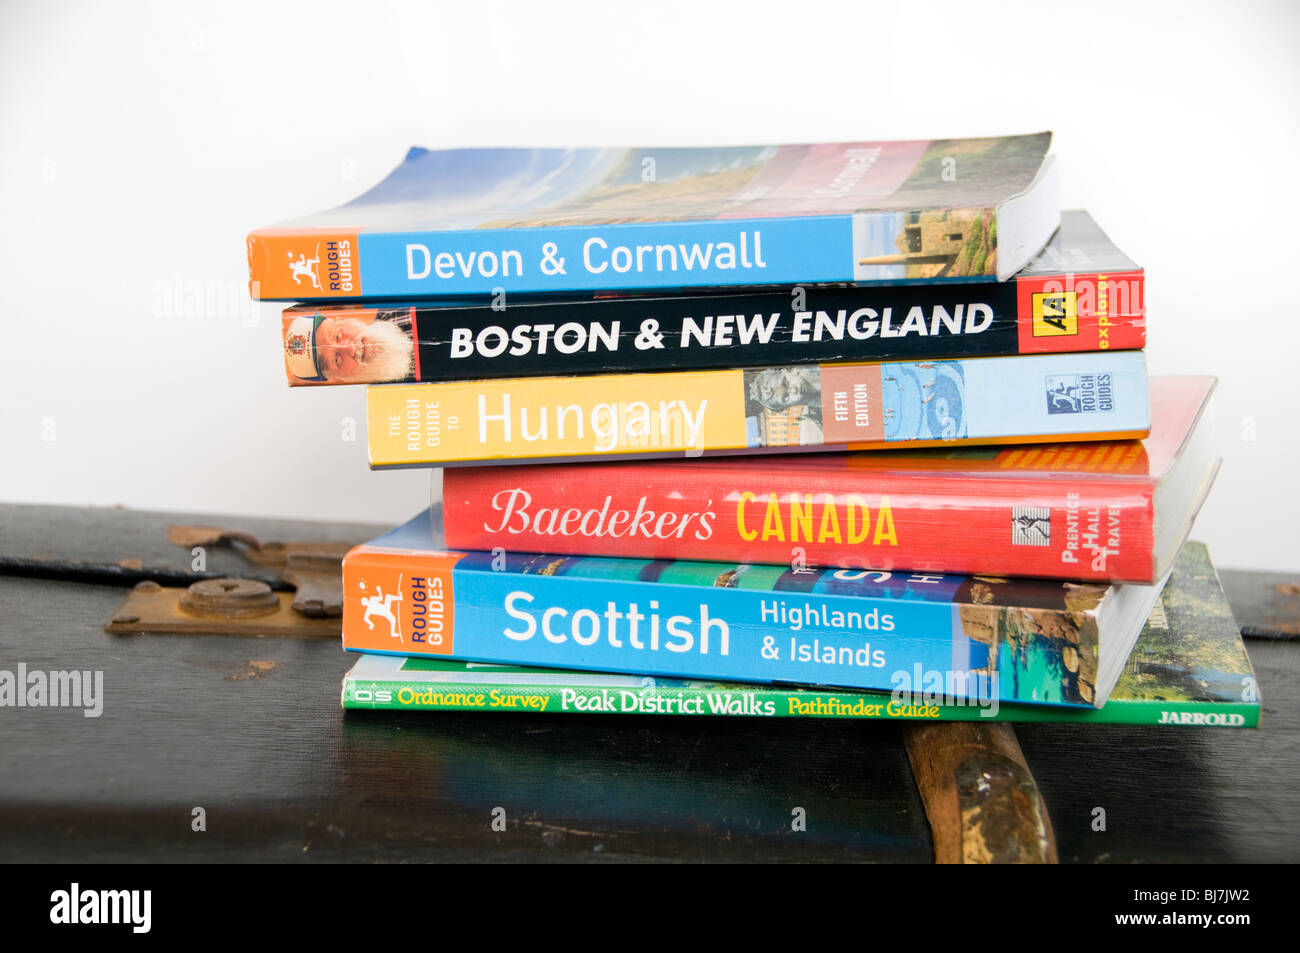 A selection of travel guide books on an old suitcase - Stock Image